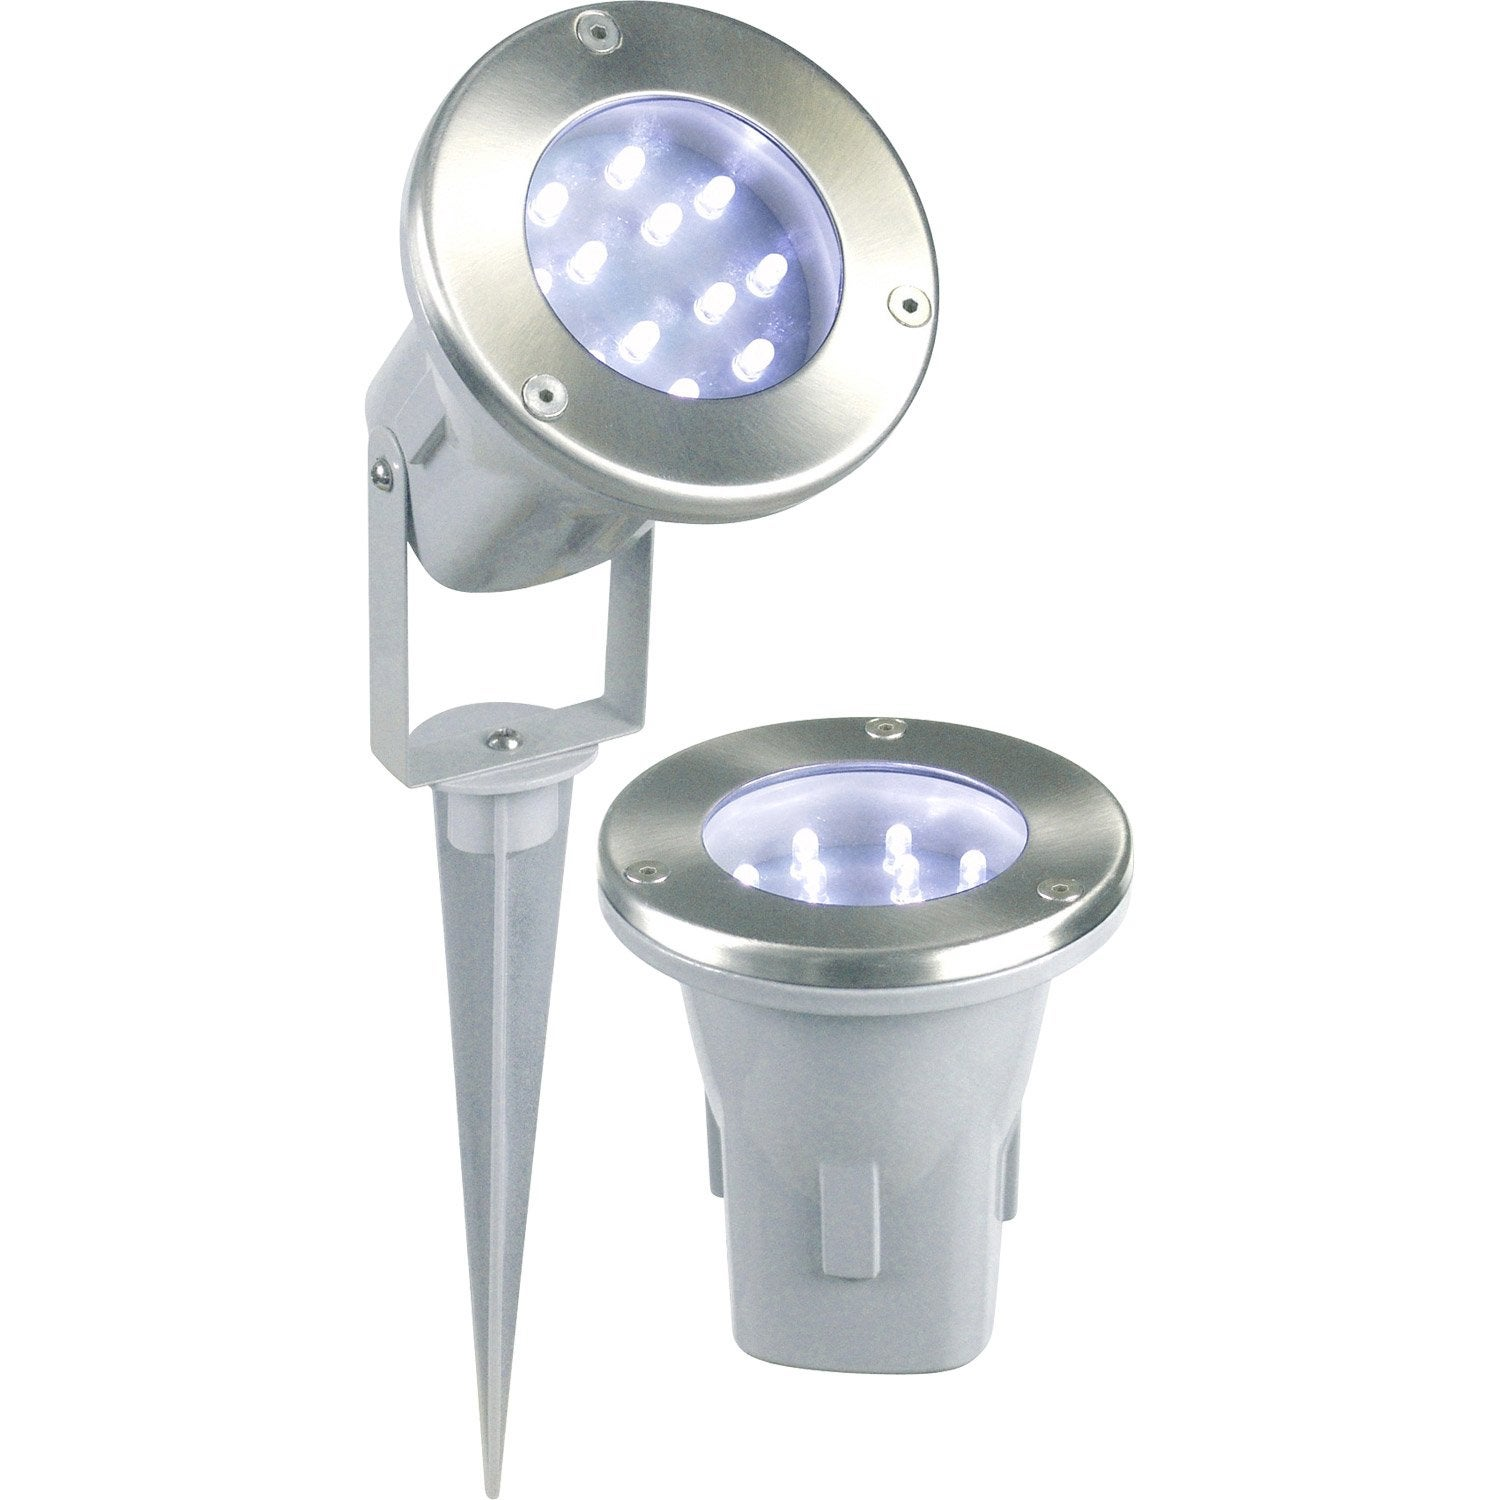 Spot piscine amazing spot piscine par led w rgb with spot for Spot piscine desjoyaux